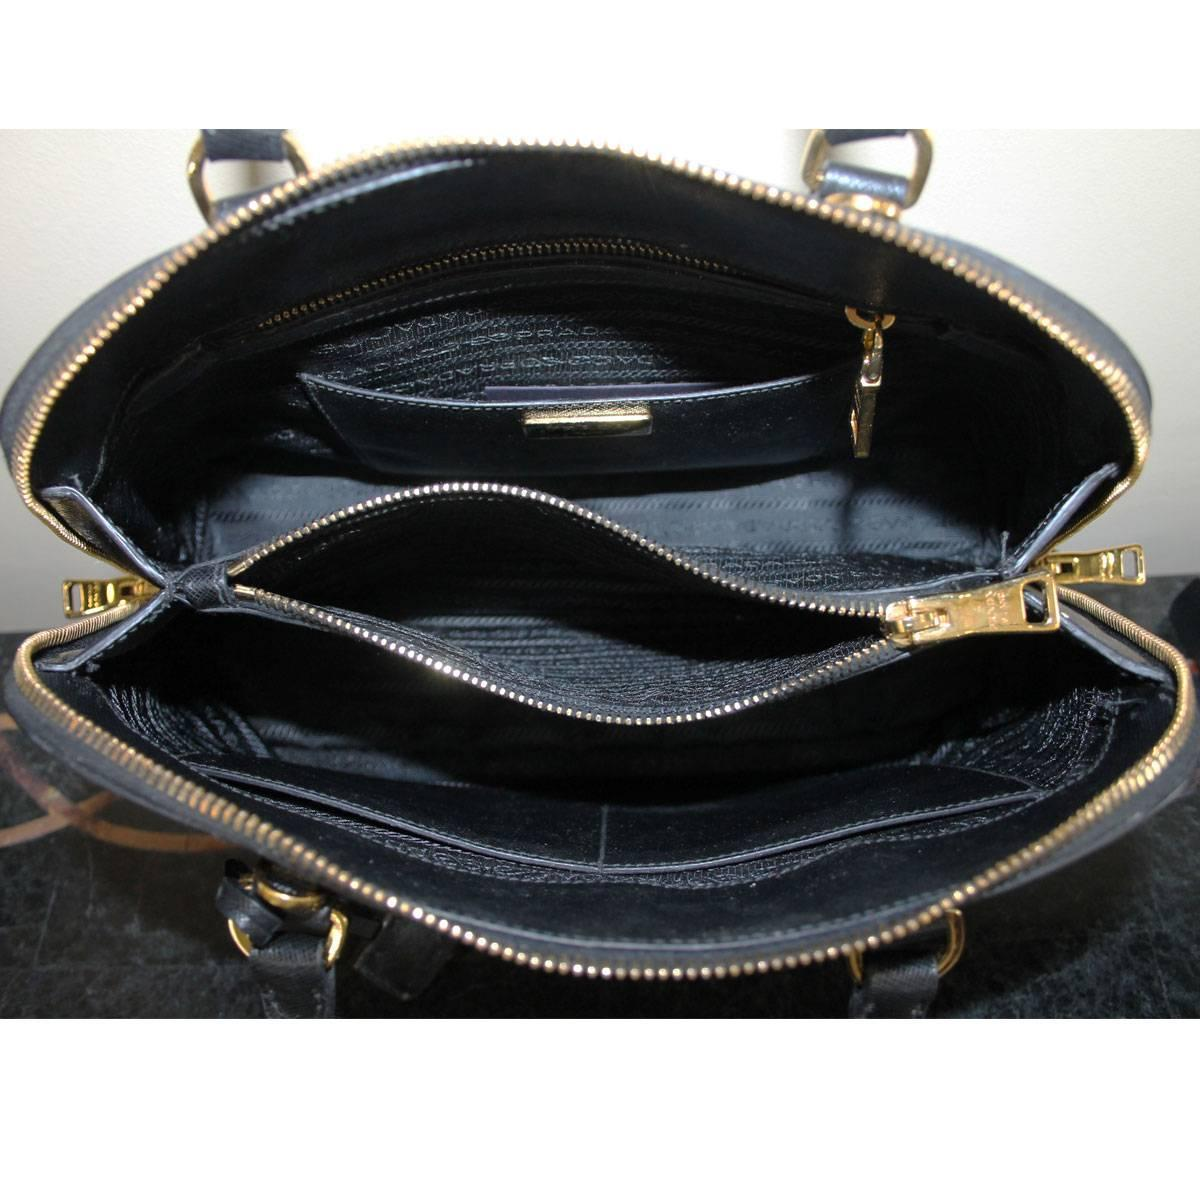 prada leather tote decorative side zippers